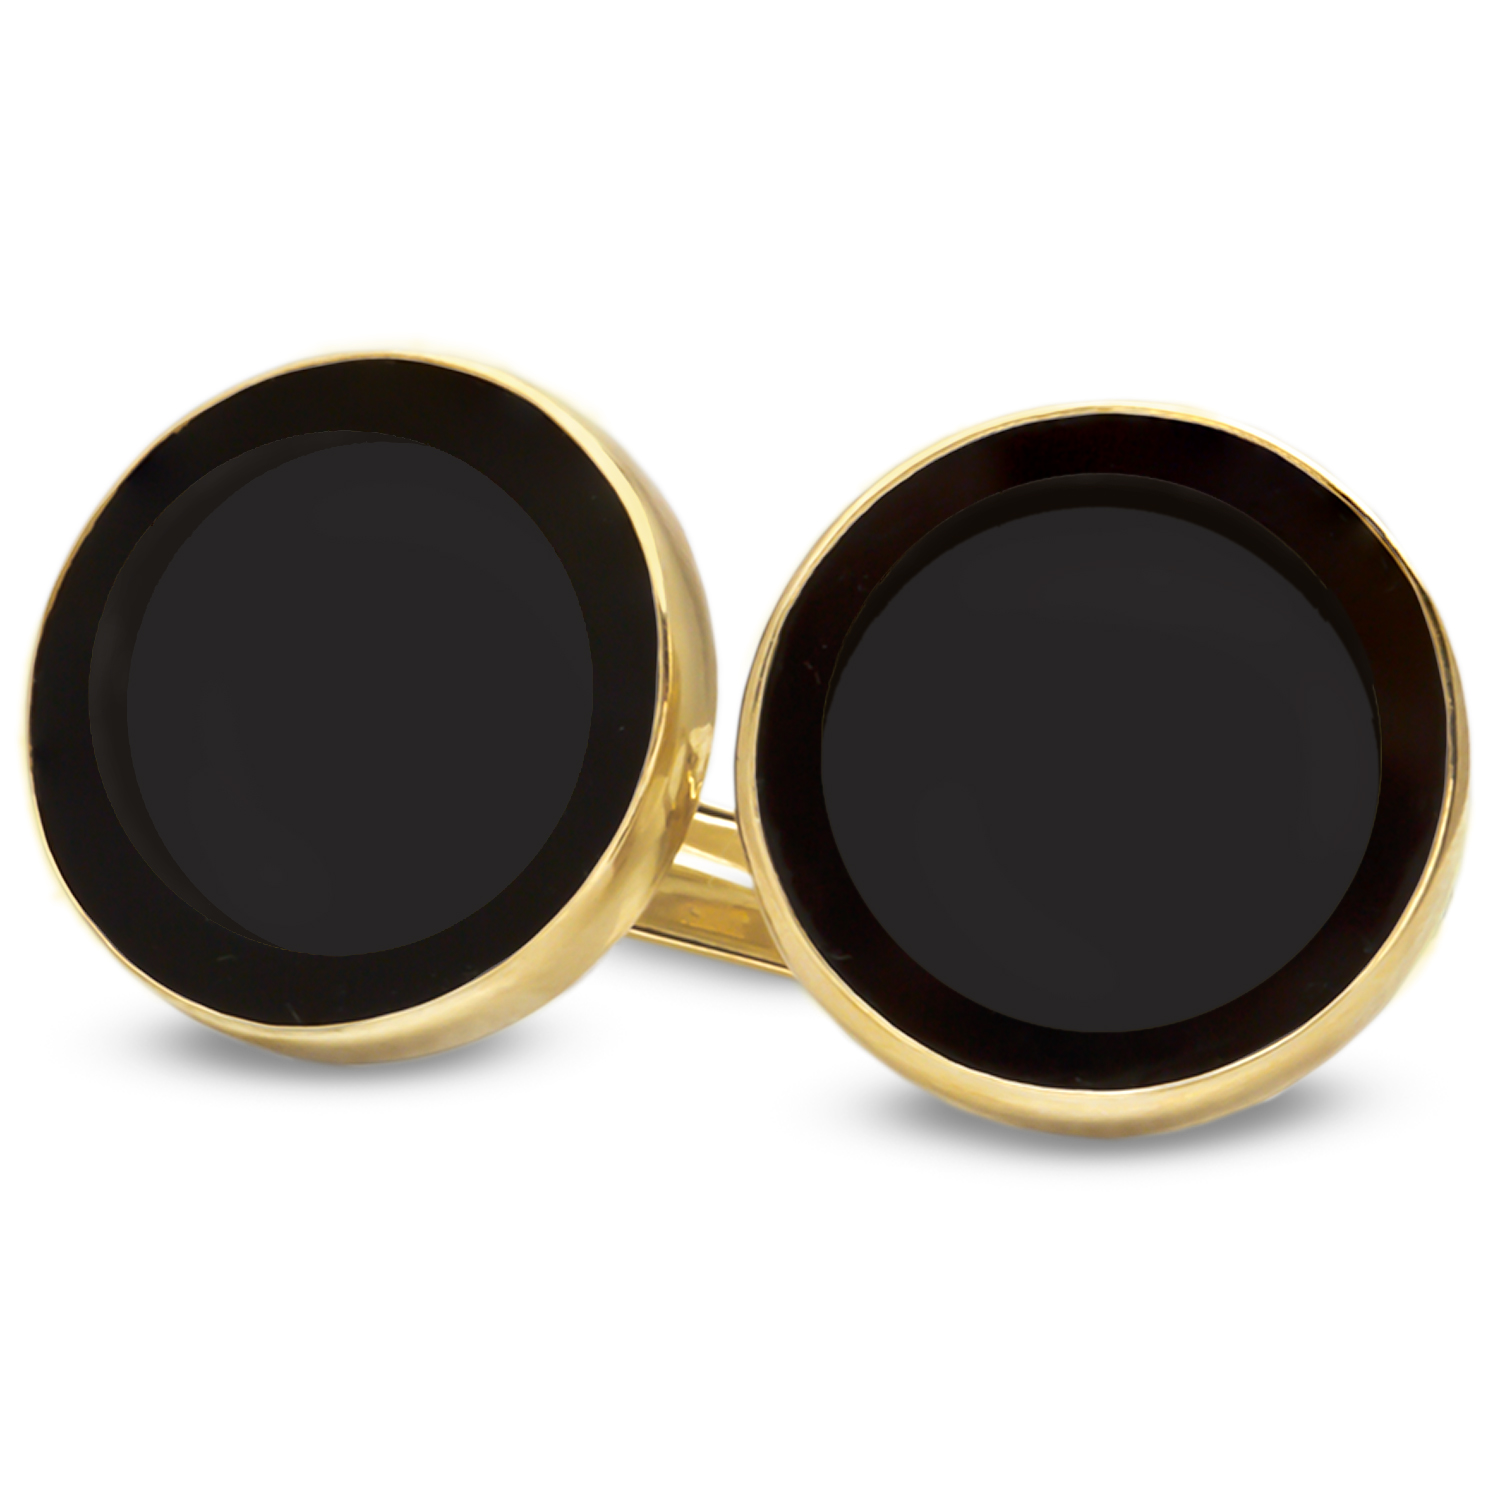 14k Gold Onyx Polished Coin Cuff Links - 14mm